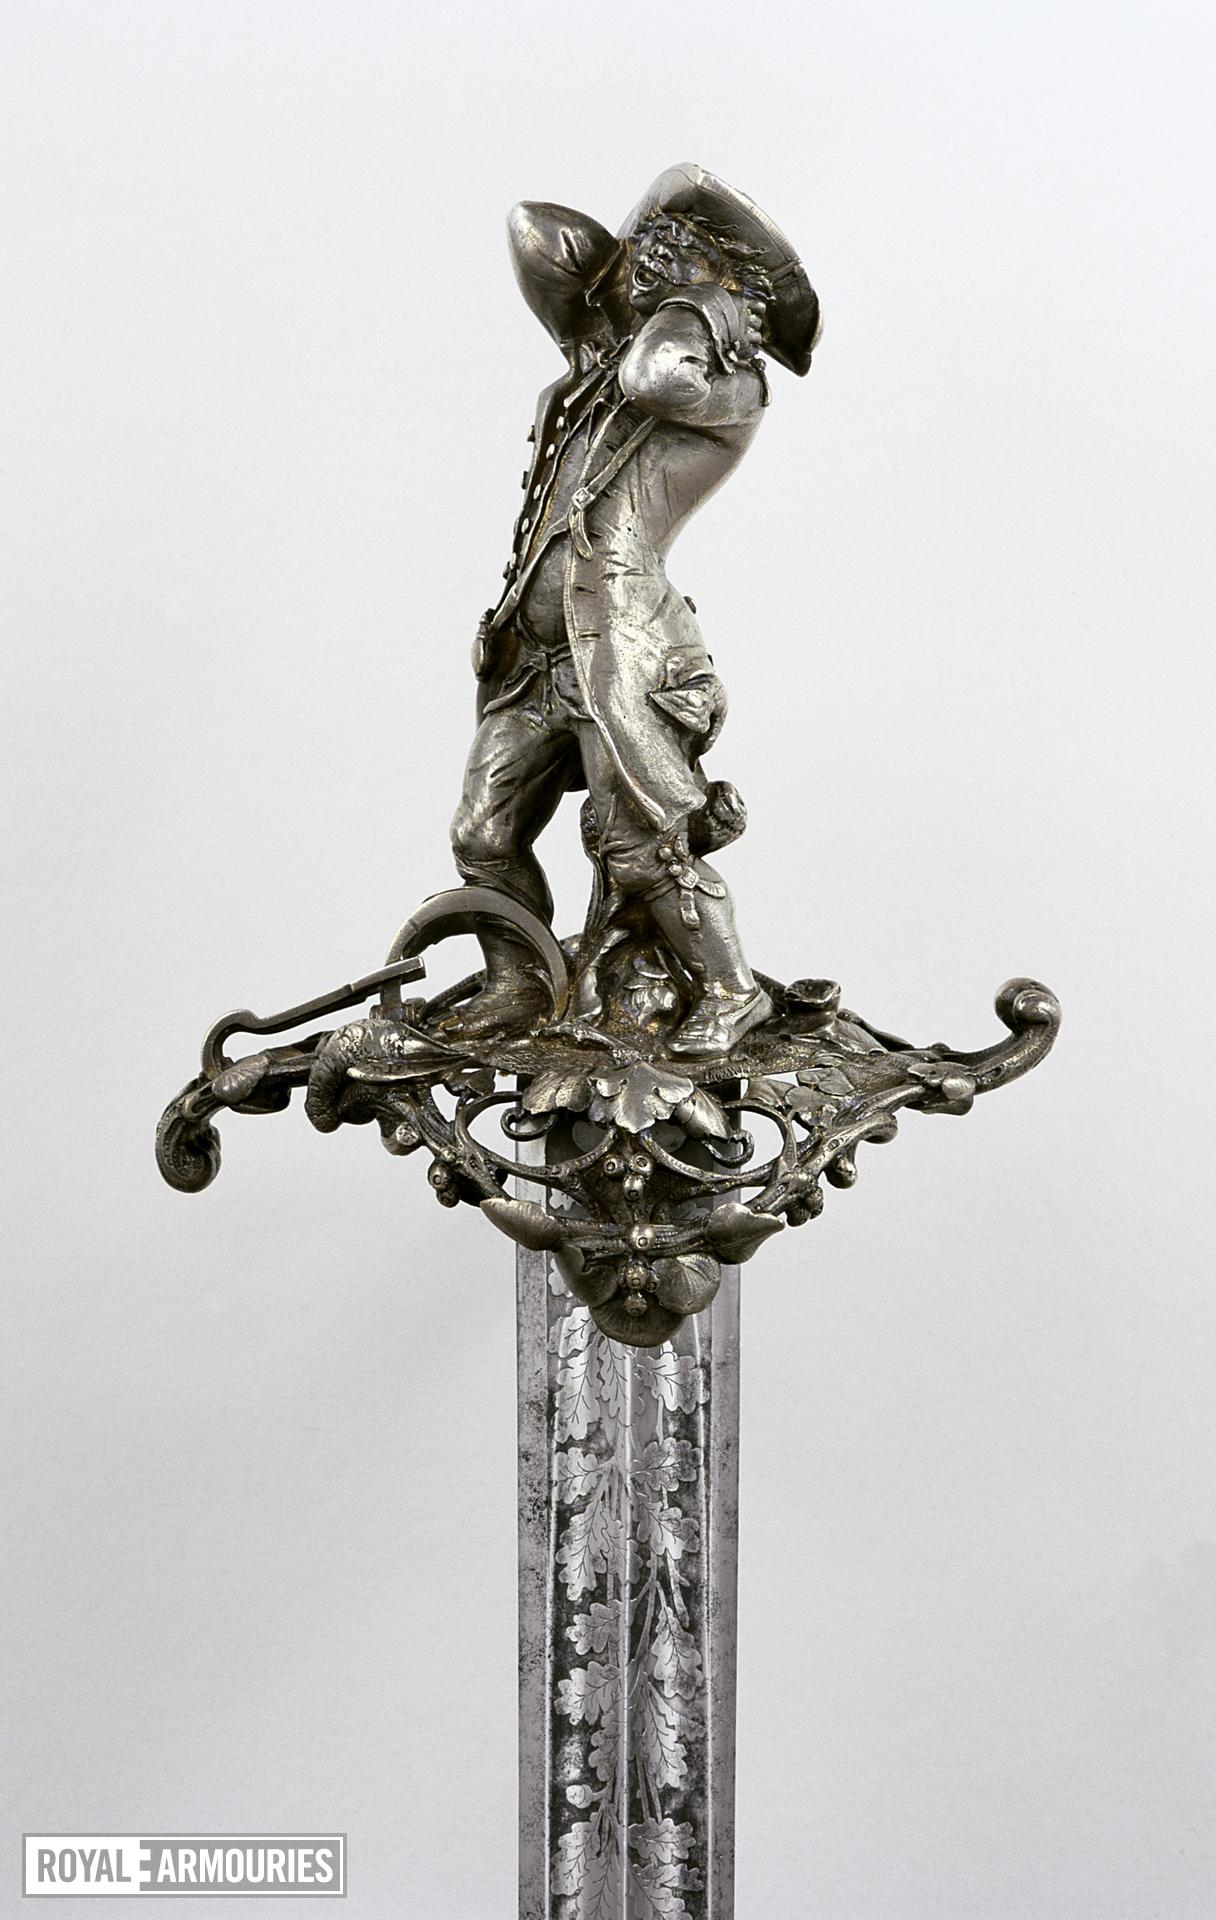 Sword - Hanger and scabbard Hunting hanger and scabbard by Froment-Meurice, the hilt by Jules Wiese.